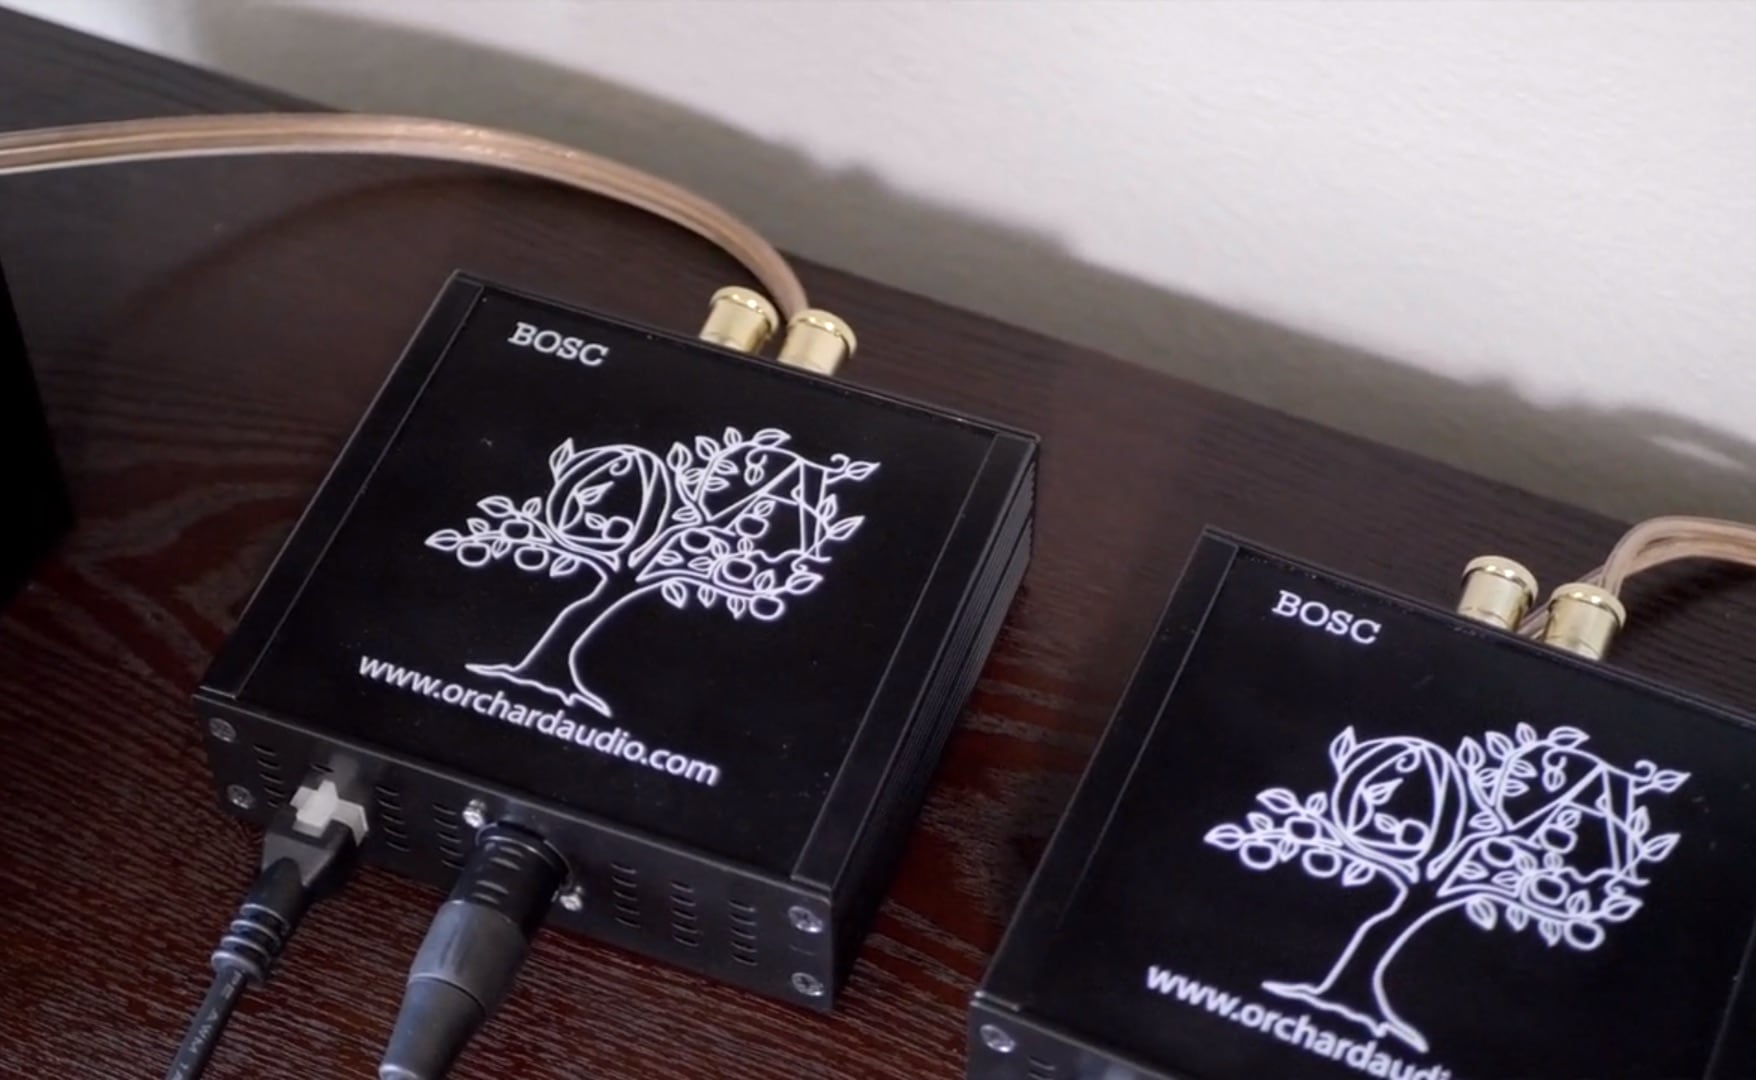 BOSC Monoblock GaN Audio Amplifier will instantly improve your audio